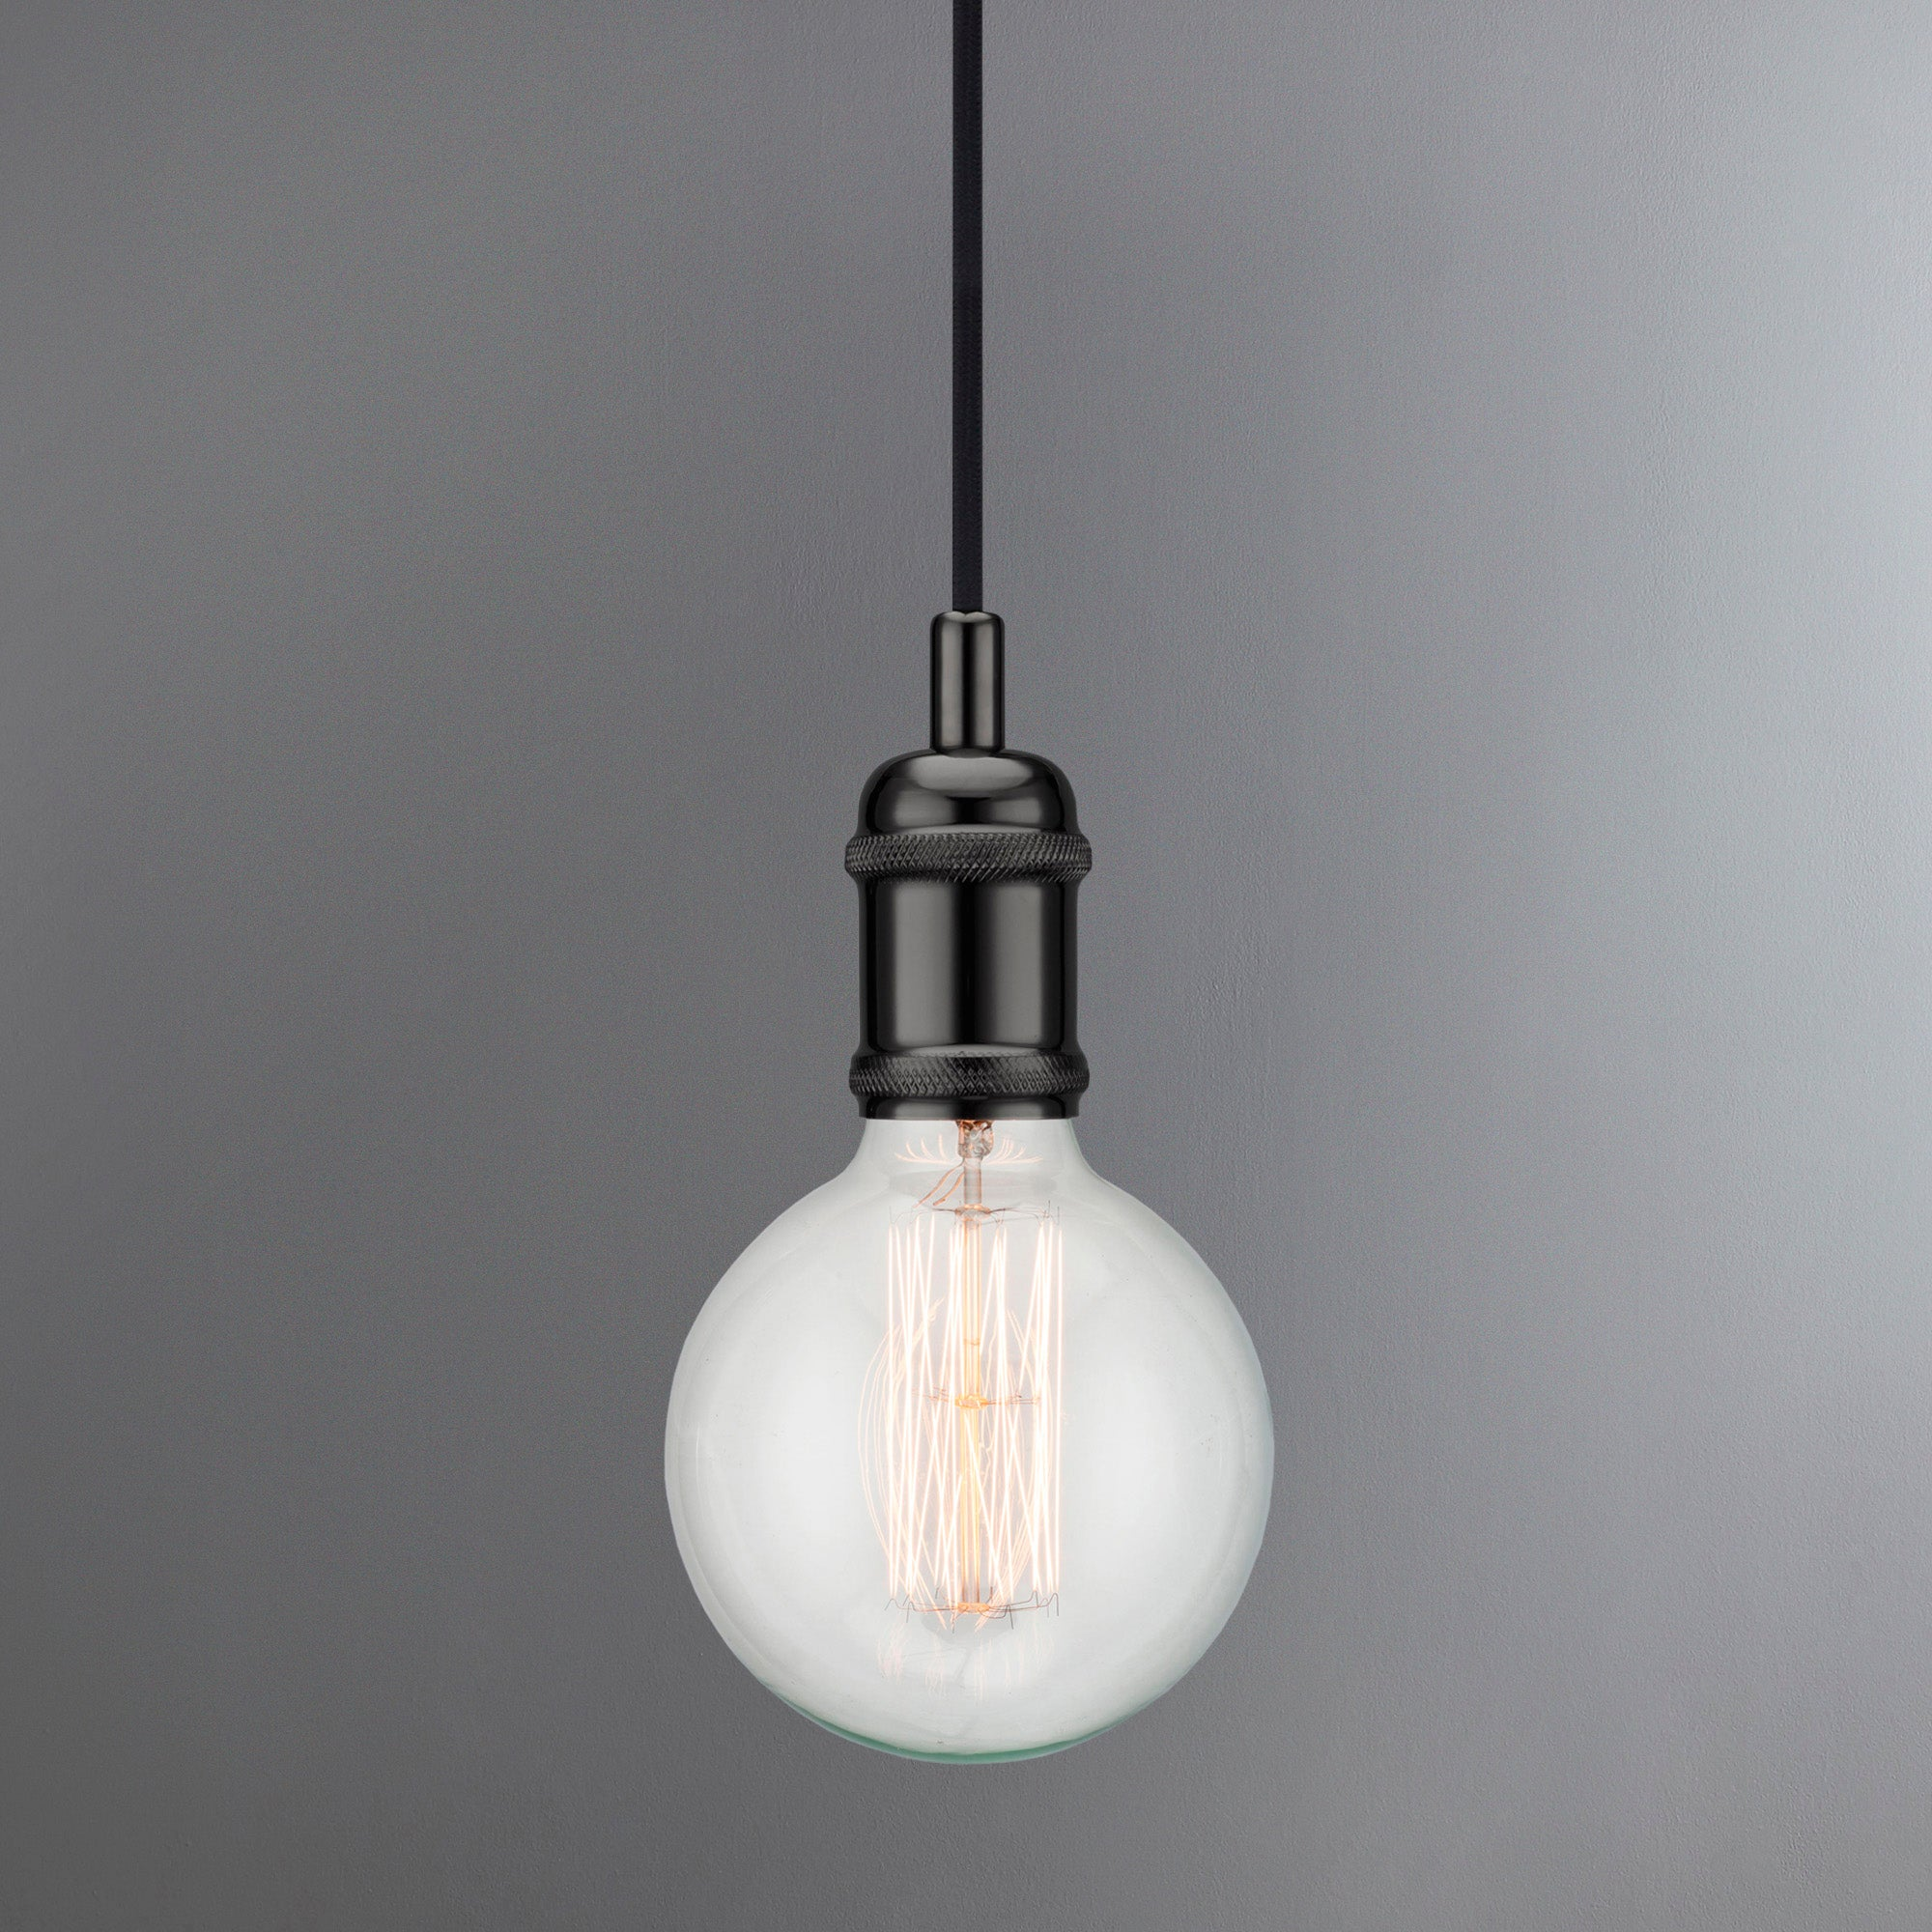 Image of Avra Black Suspension Light Pendant Black